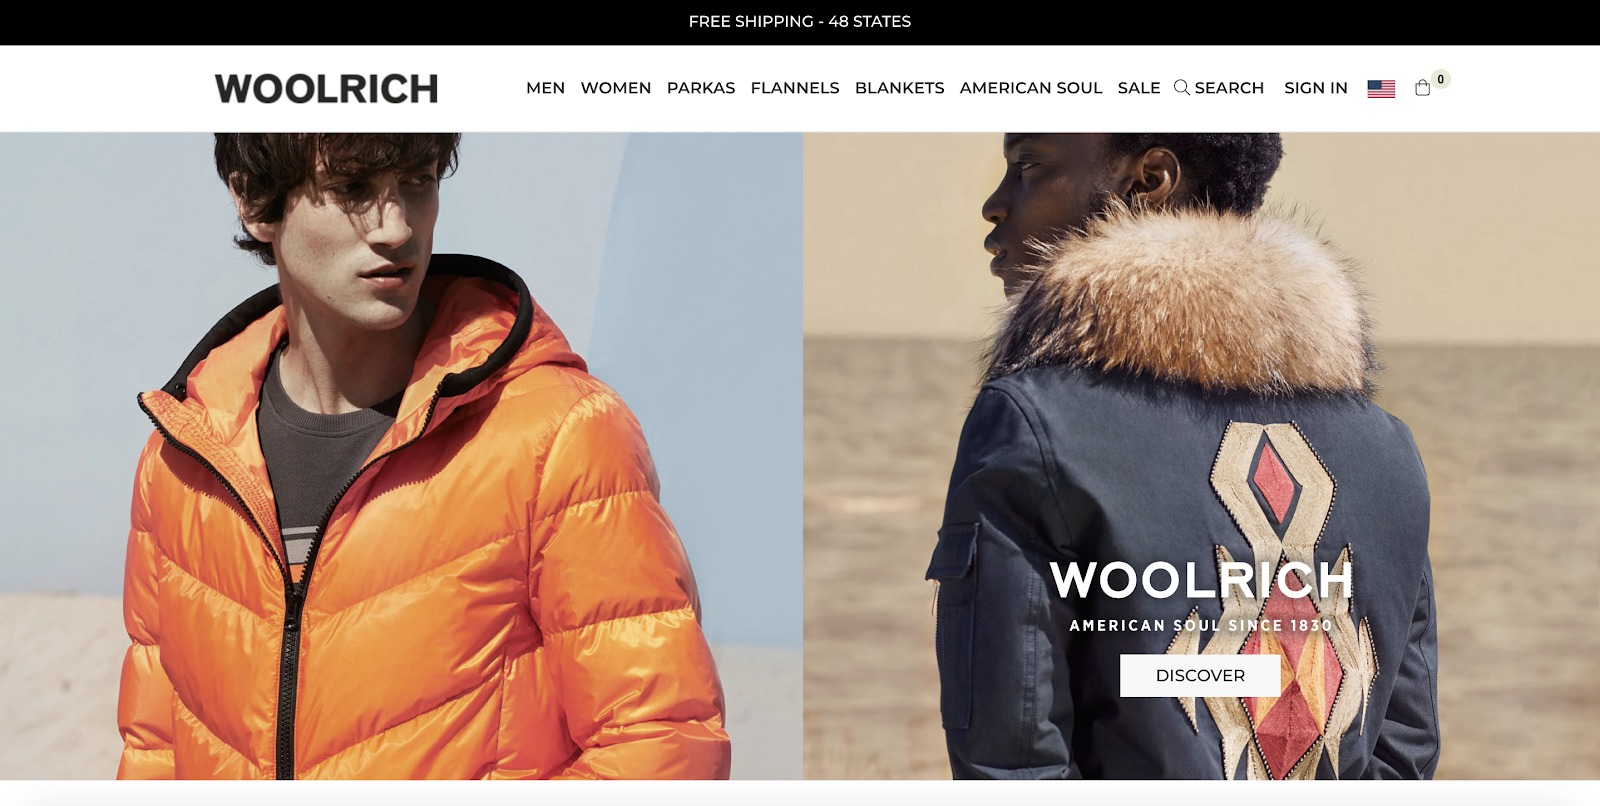 woolrich store example